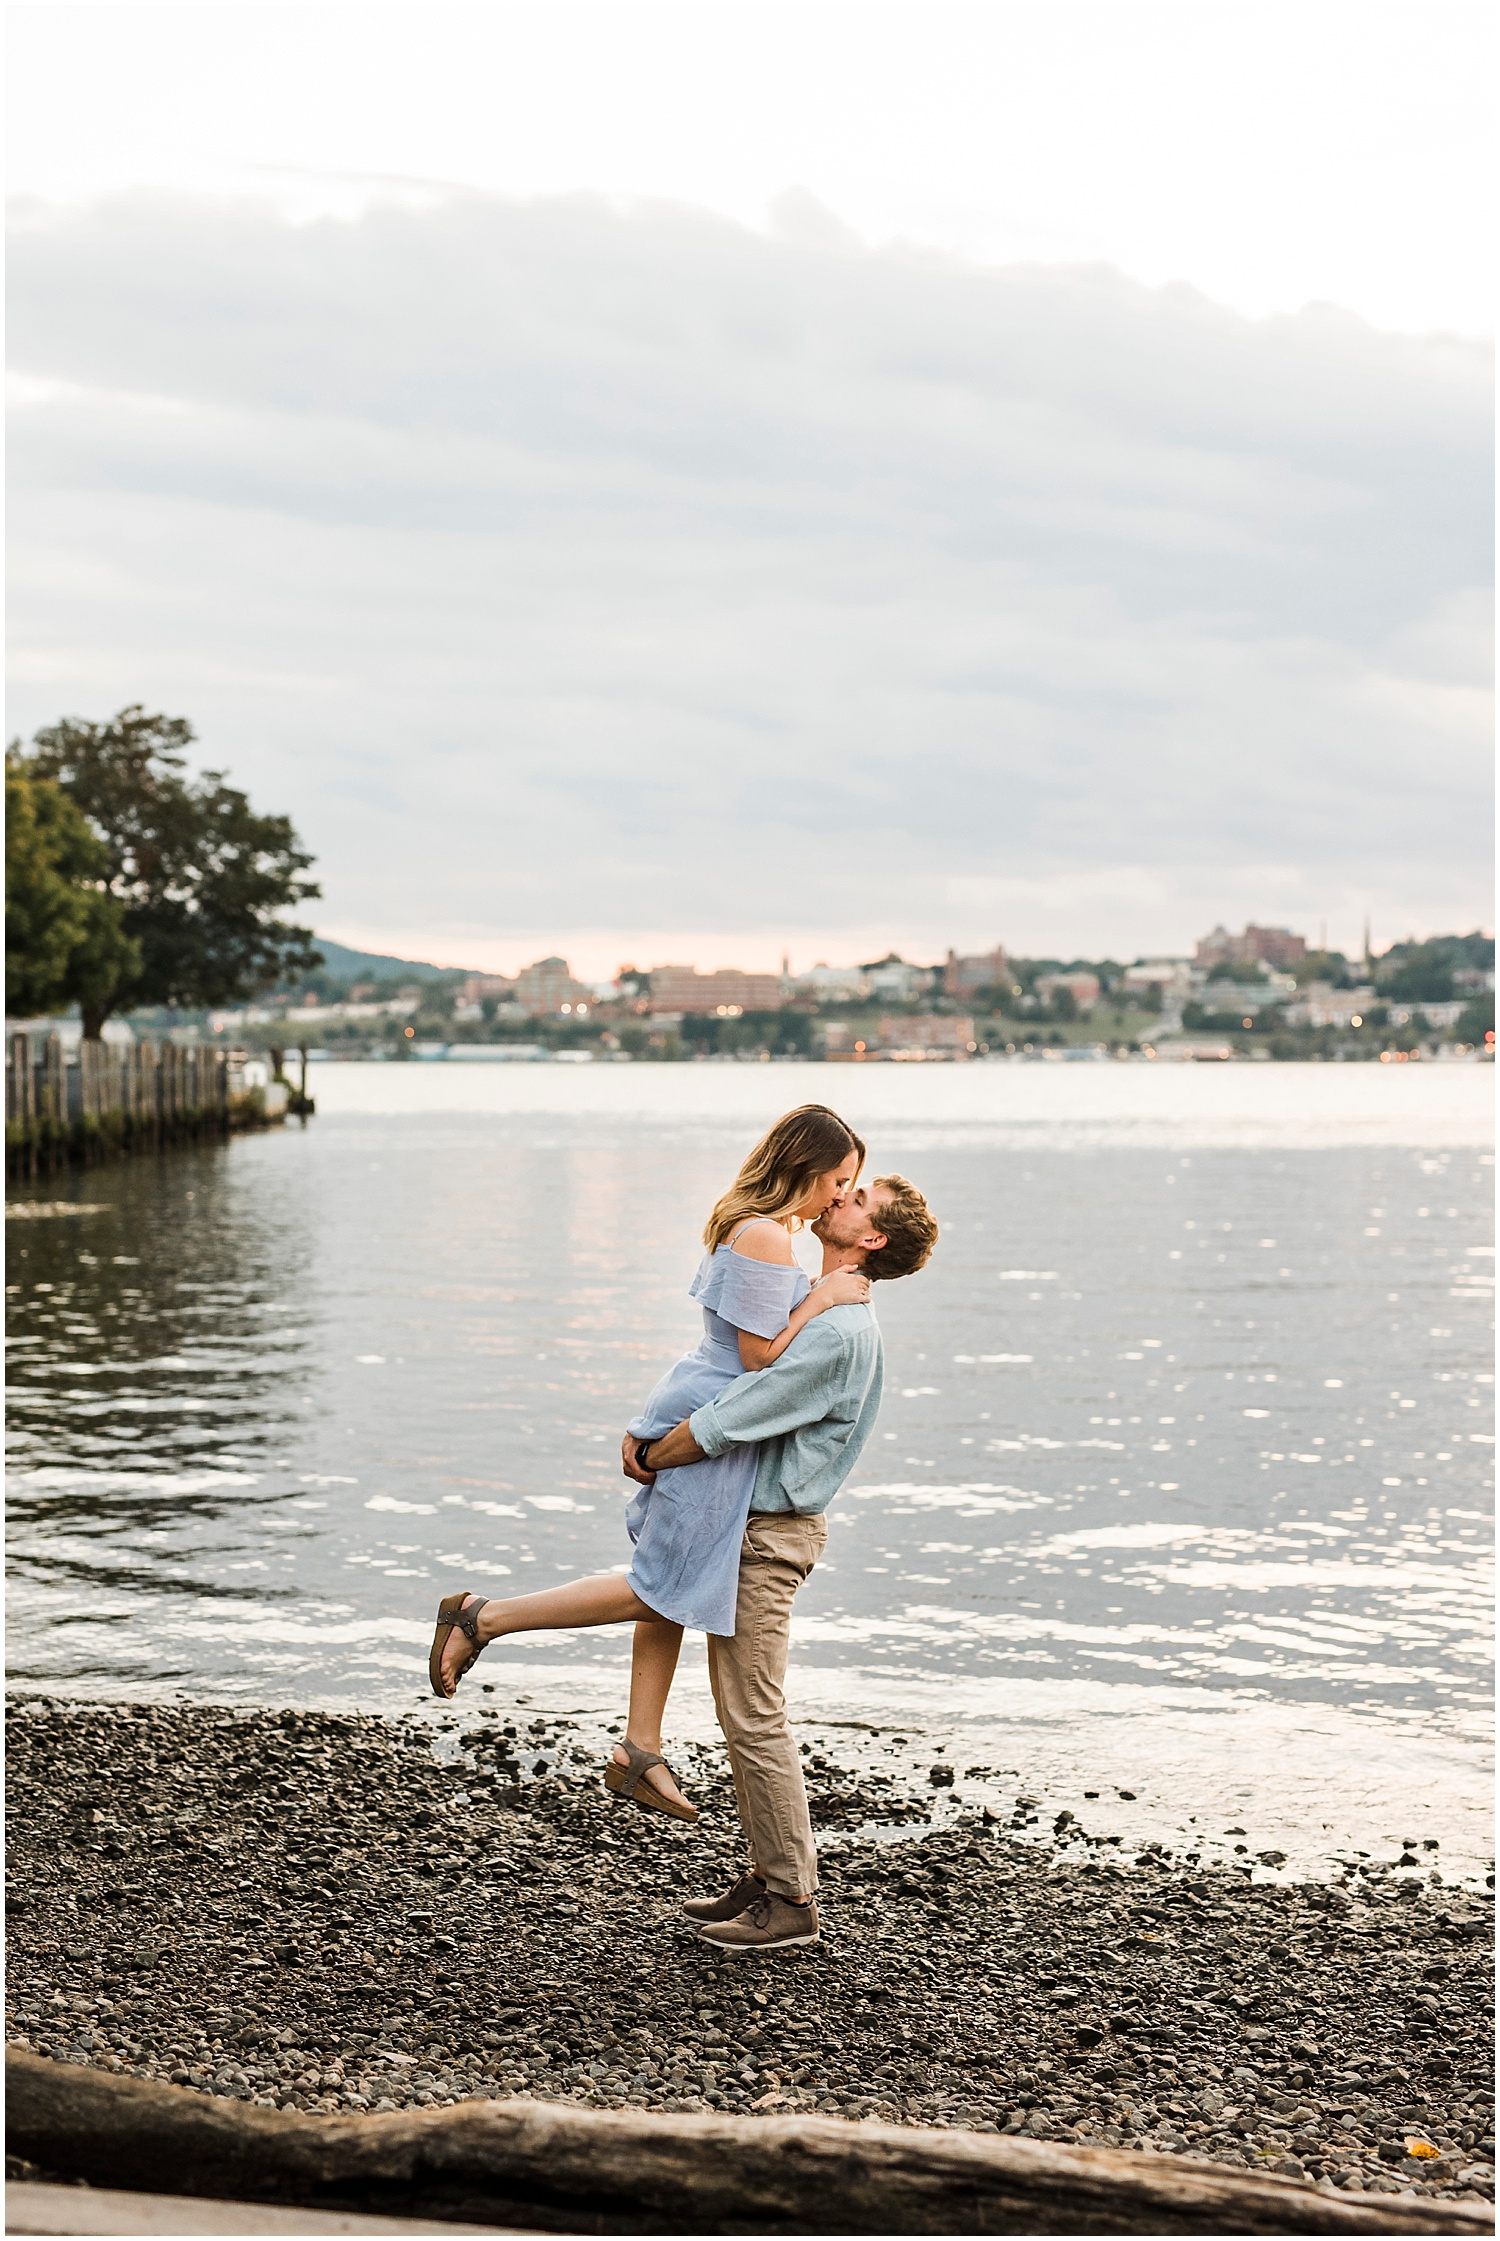 Beacon-NY-Engagement-Photos-Apollo-Fields-01.jpg